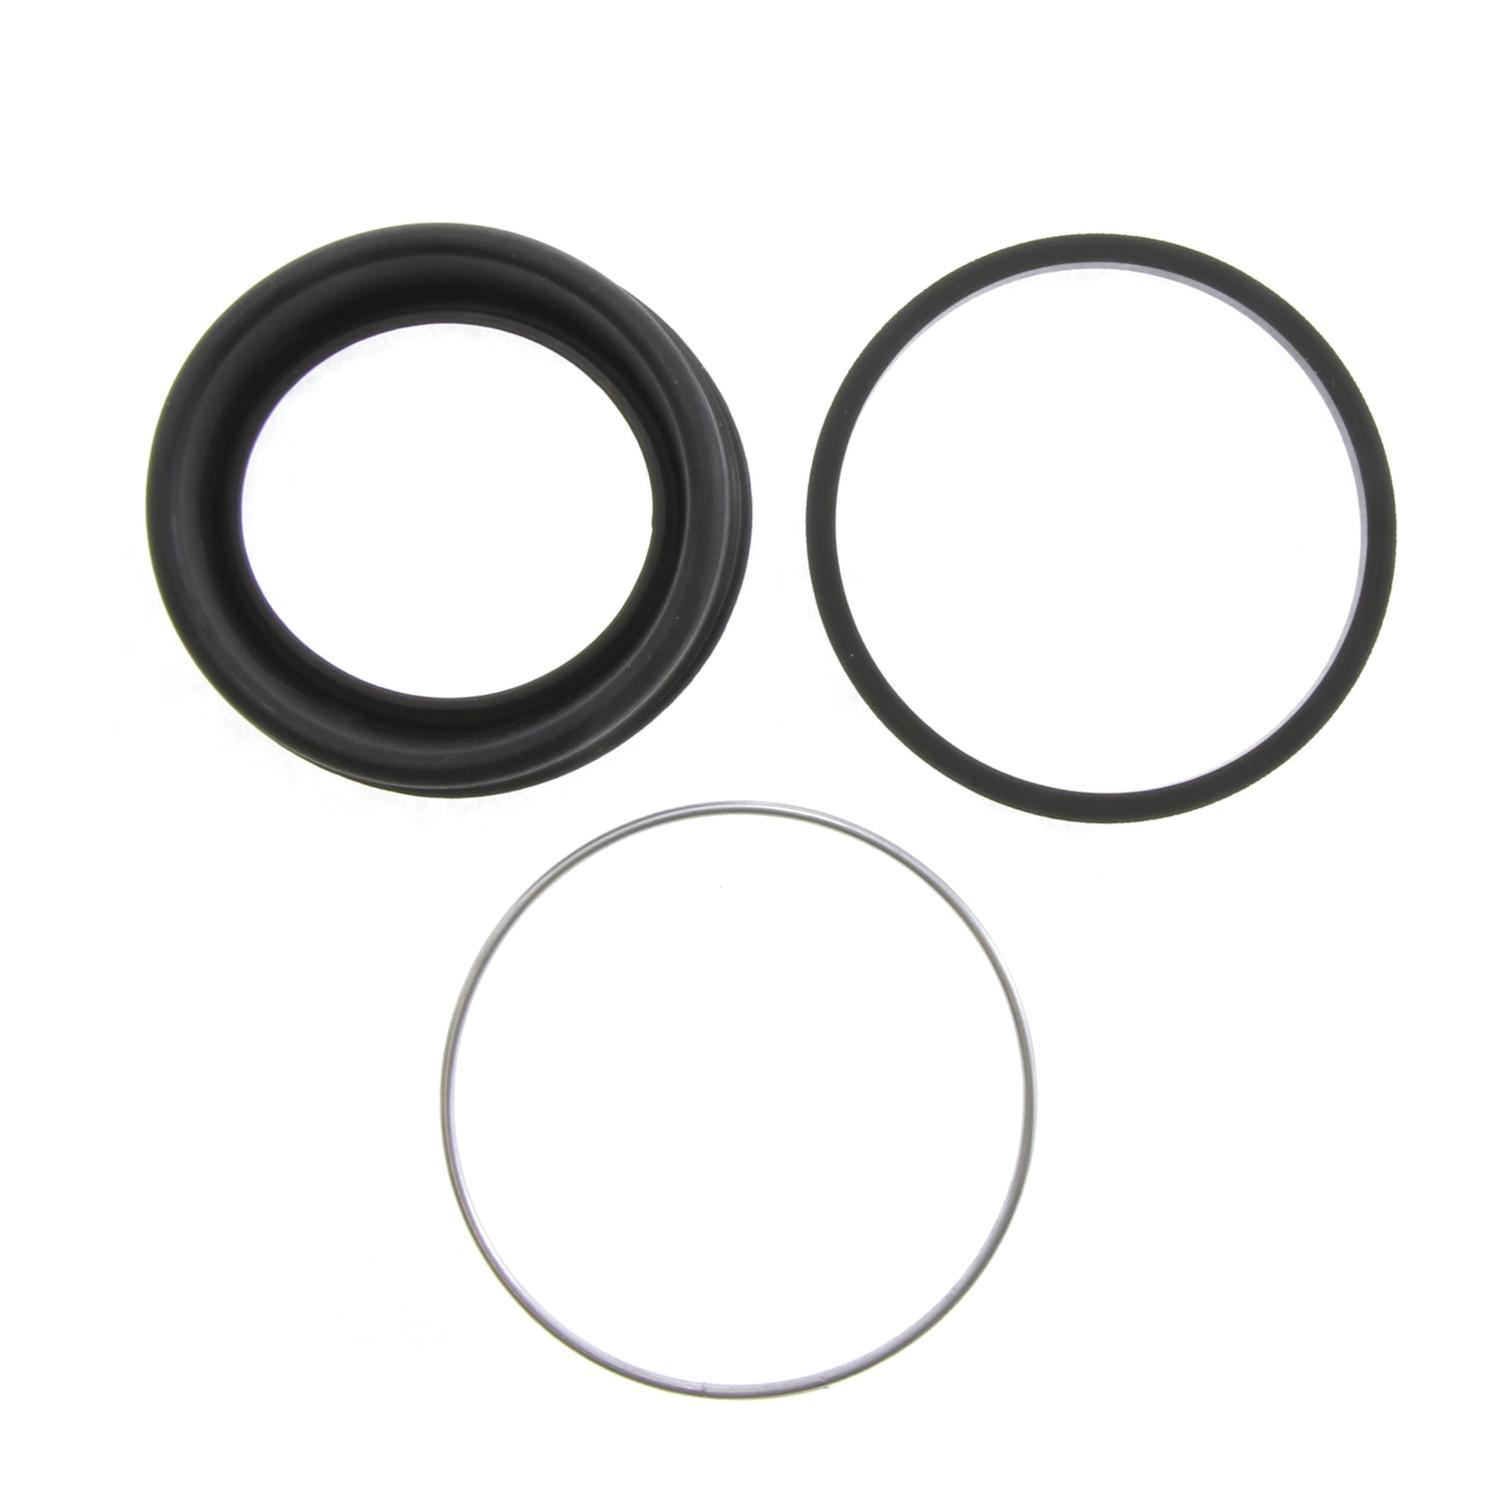 CENTRIC PARTS - Brake Caliper Repair Kit (Front) - CEC 143.45016